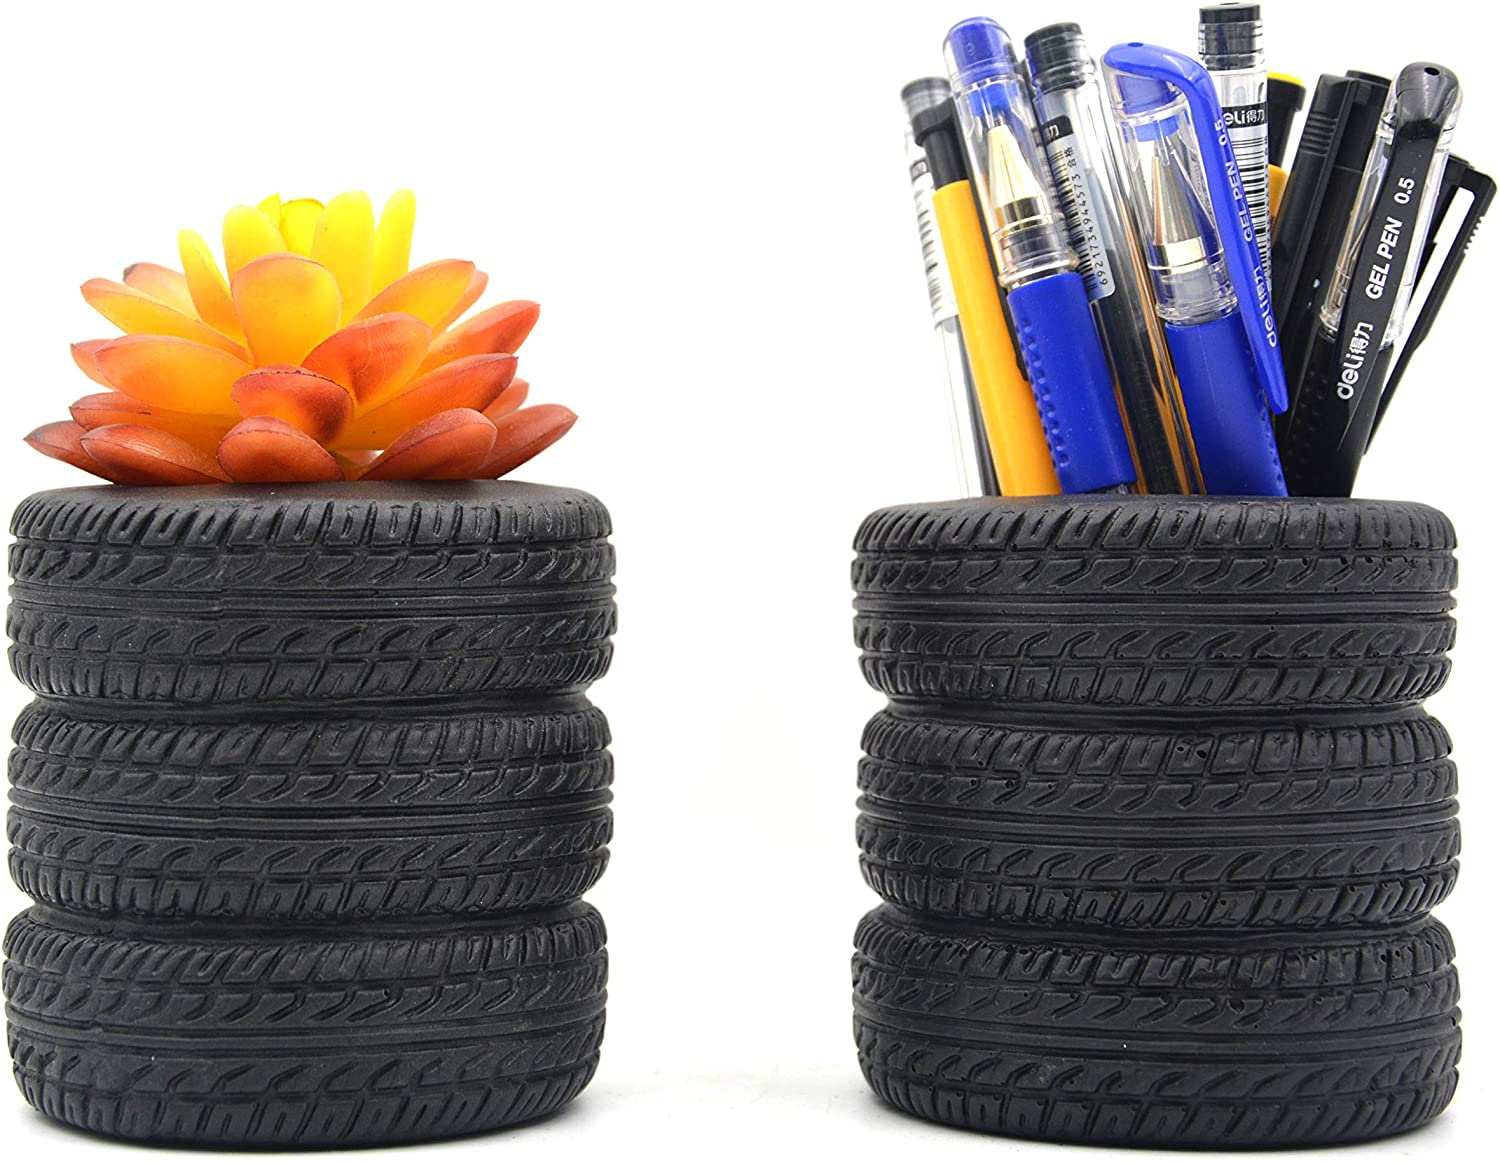 MONMOB Tire Shaped Planter Pen Holder Pencil Holder Home Office Desk Organizer Accessories Succulent Cactus Planter Pot (Pack of 2)